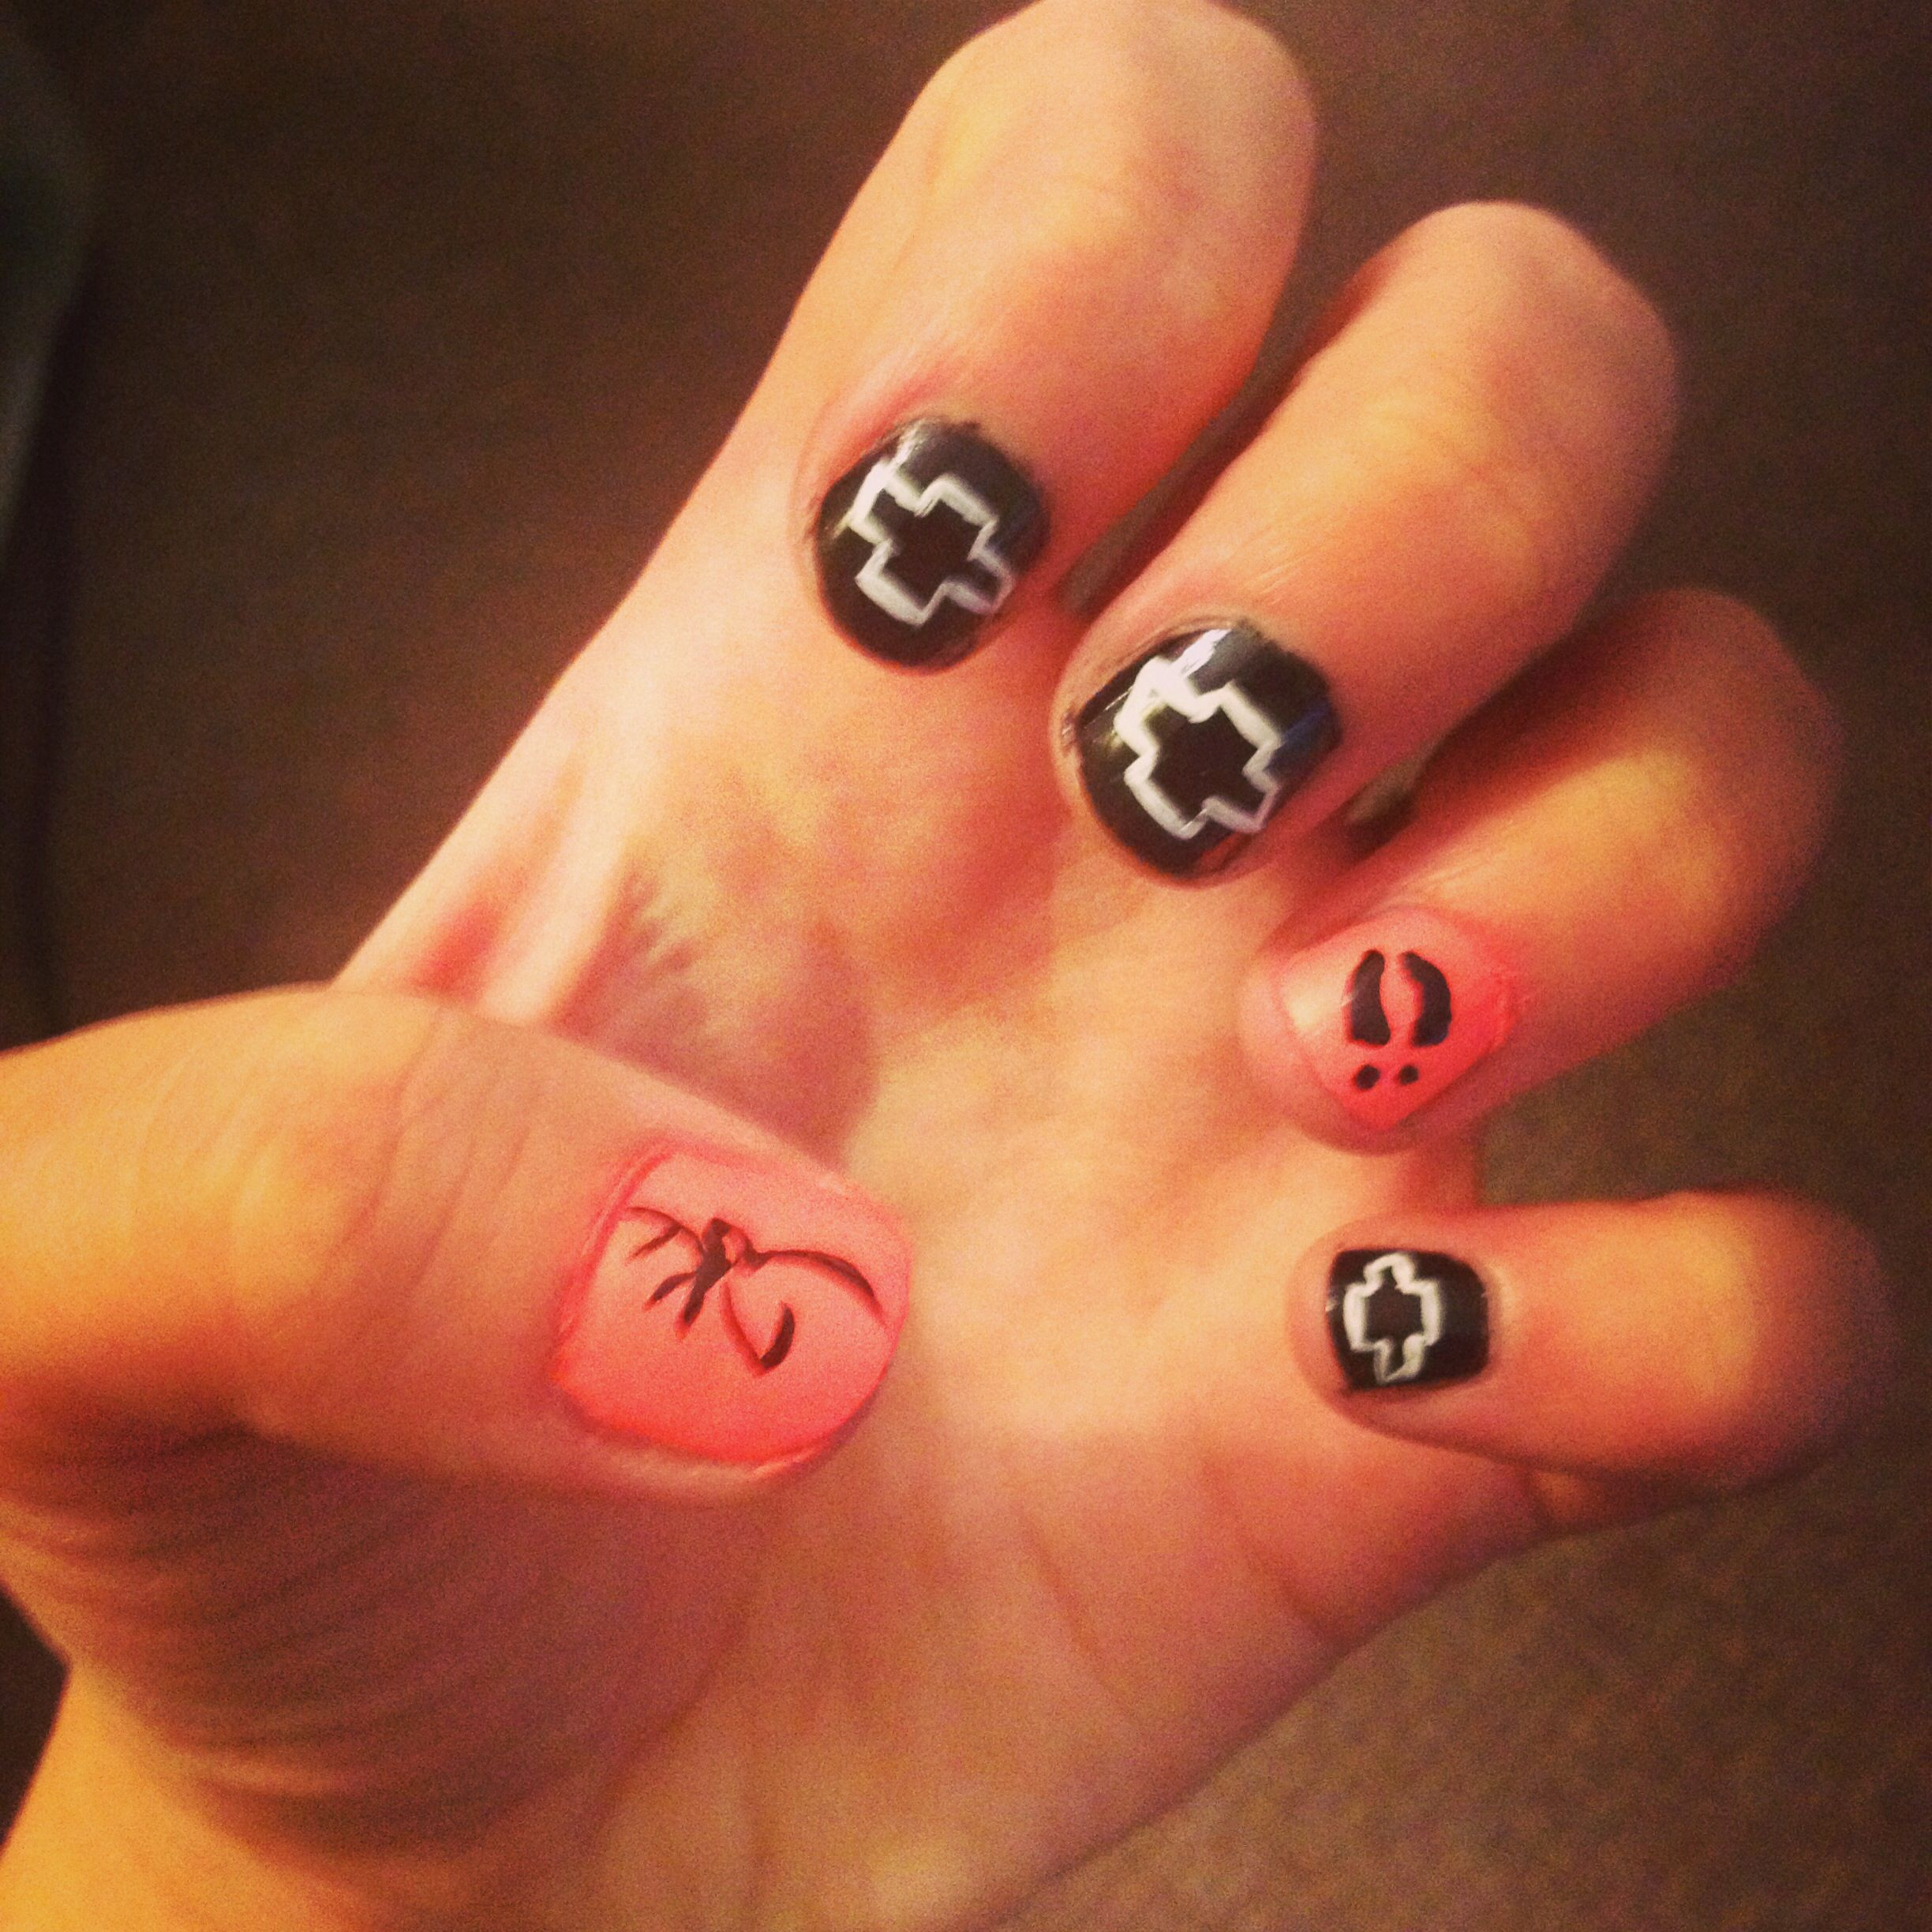 awesome nails. browning logo chevy